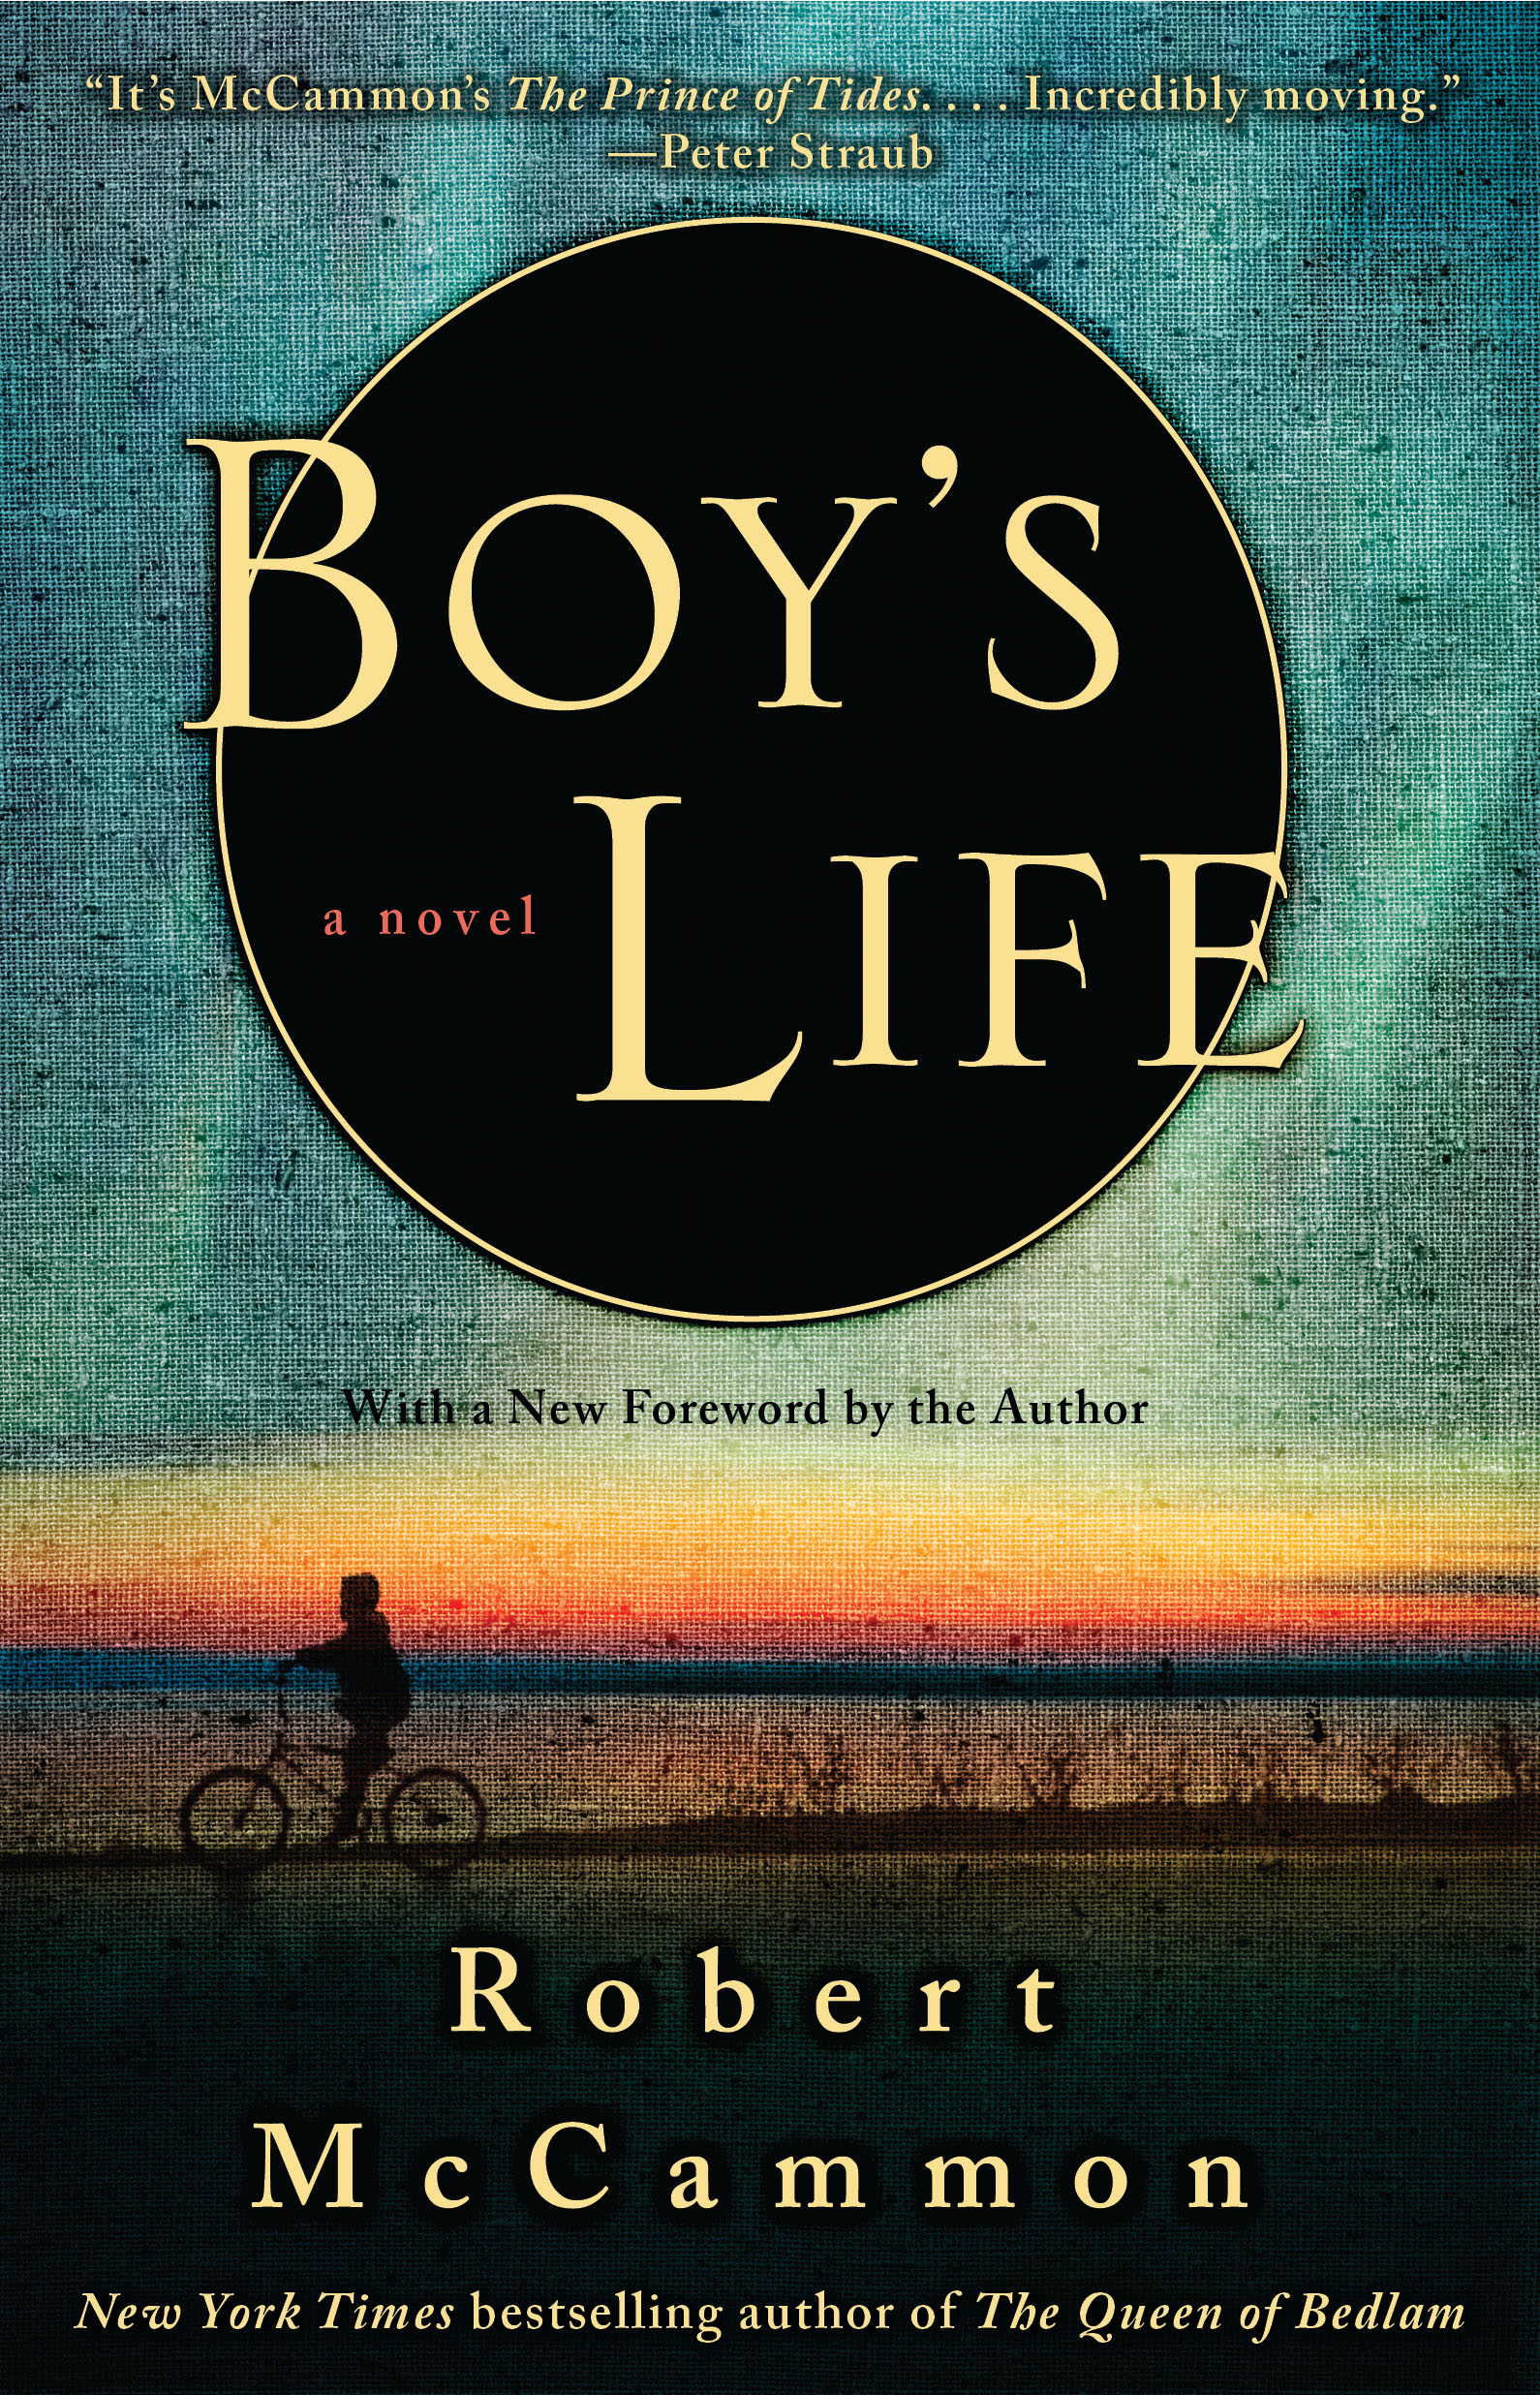 an analysis of robert mccammons novel boys life Review of the coming of age classic book boy's life by robert mccammon after reading boys life, i read mccammons other horror stories that he is known so well.